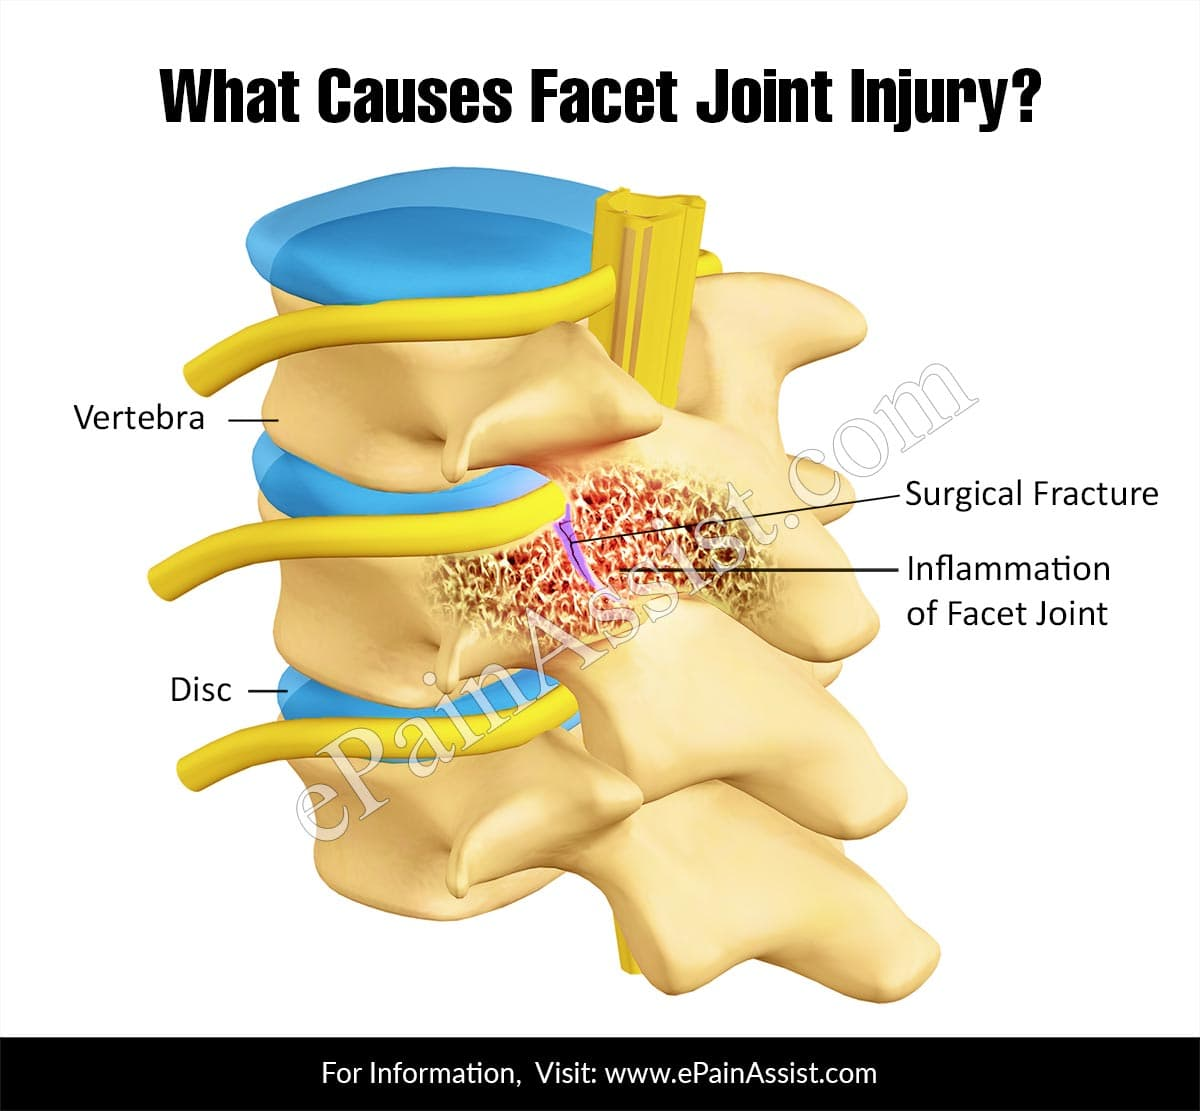 What Causes Facet Joint Injury?